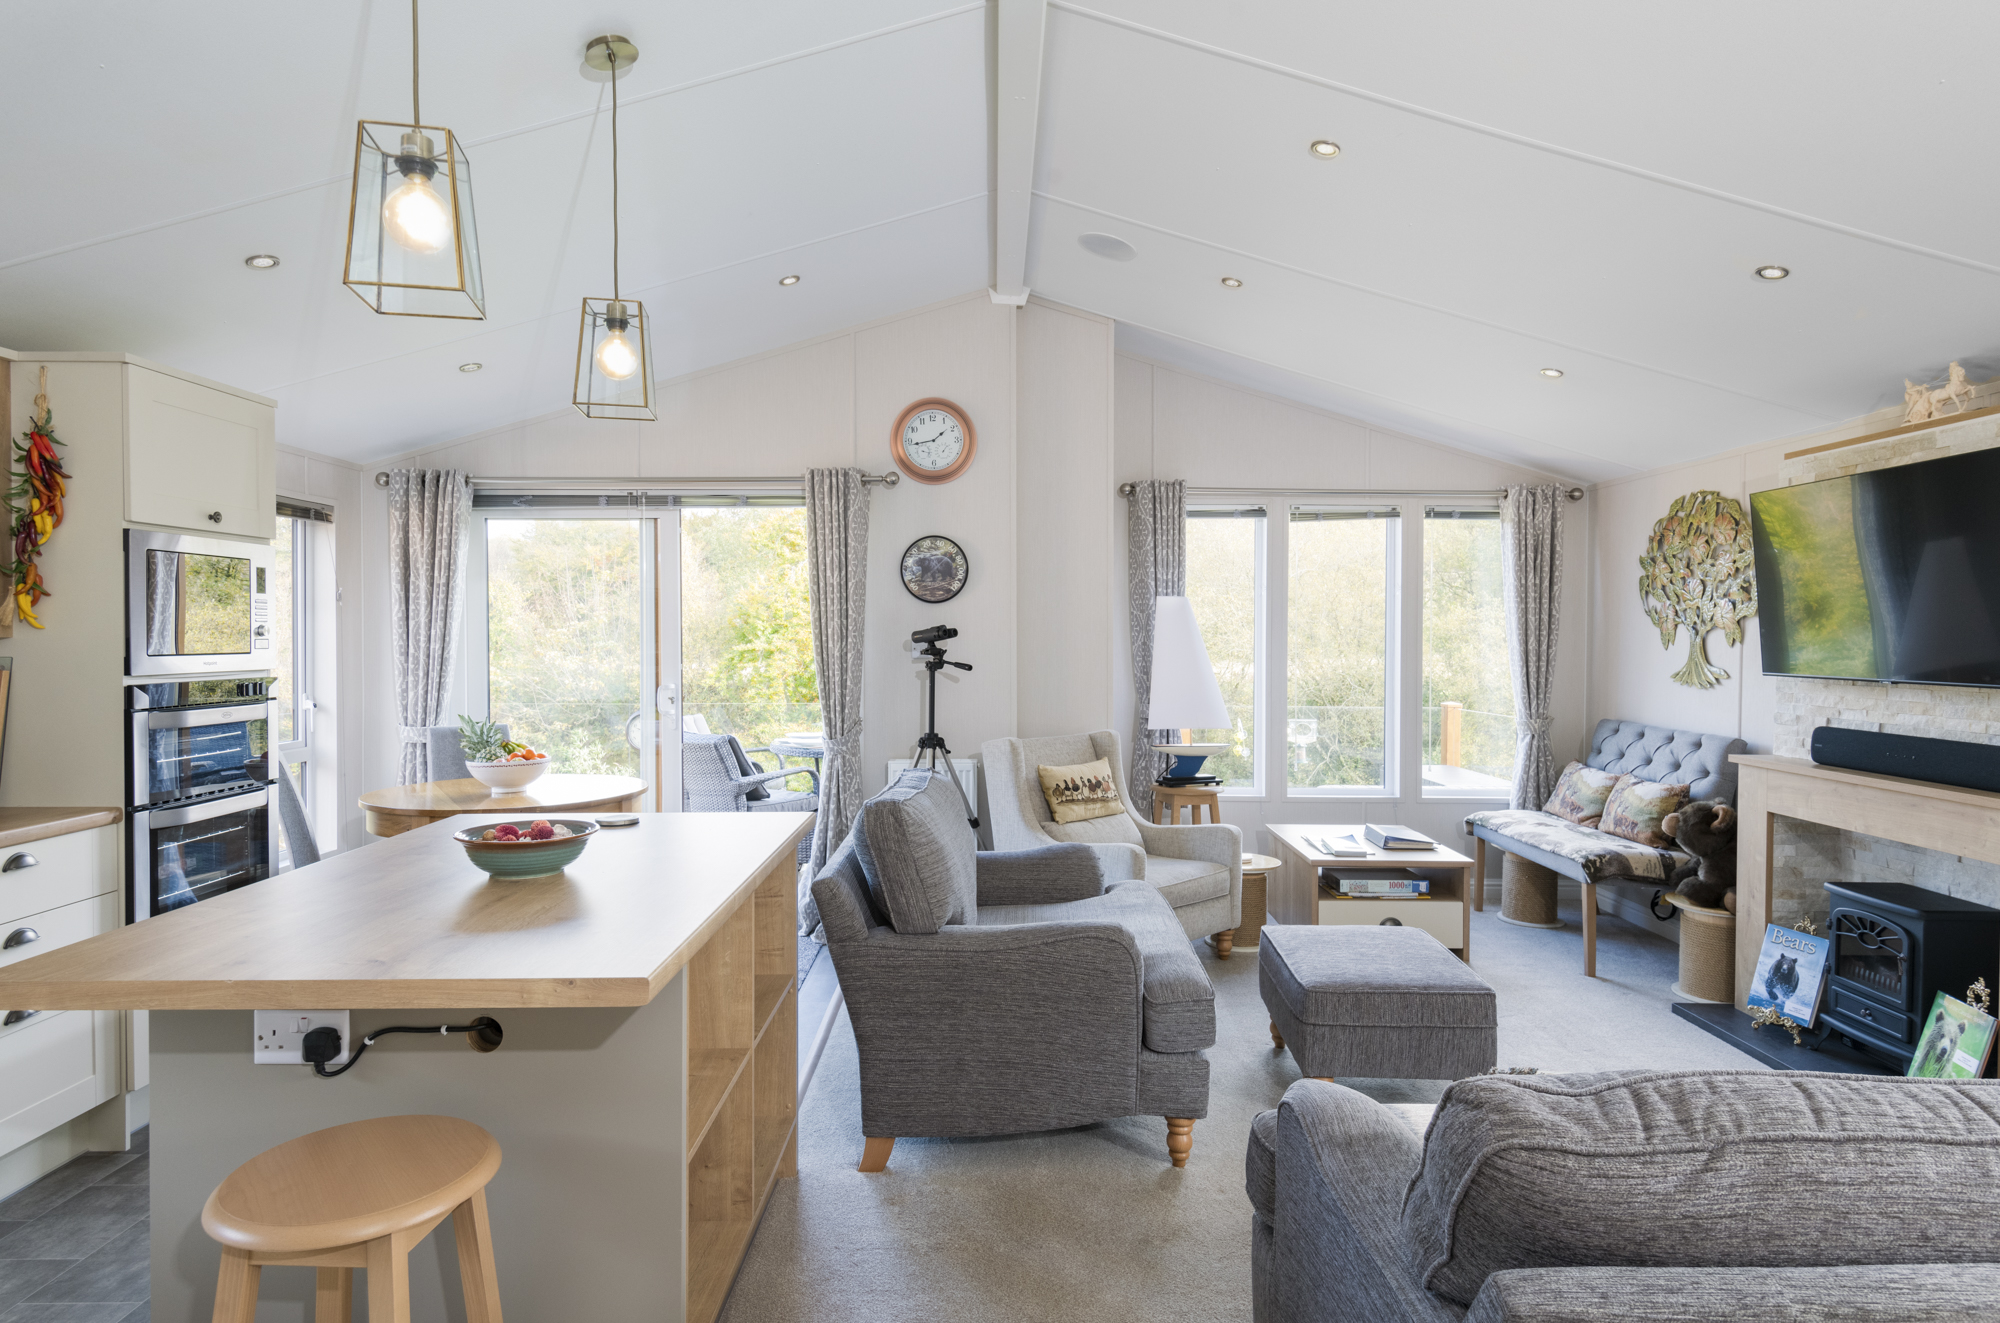 The bright and airy Lakeside Haven lodge